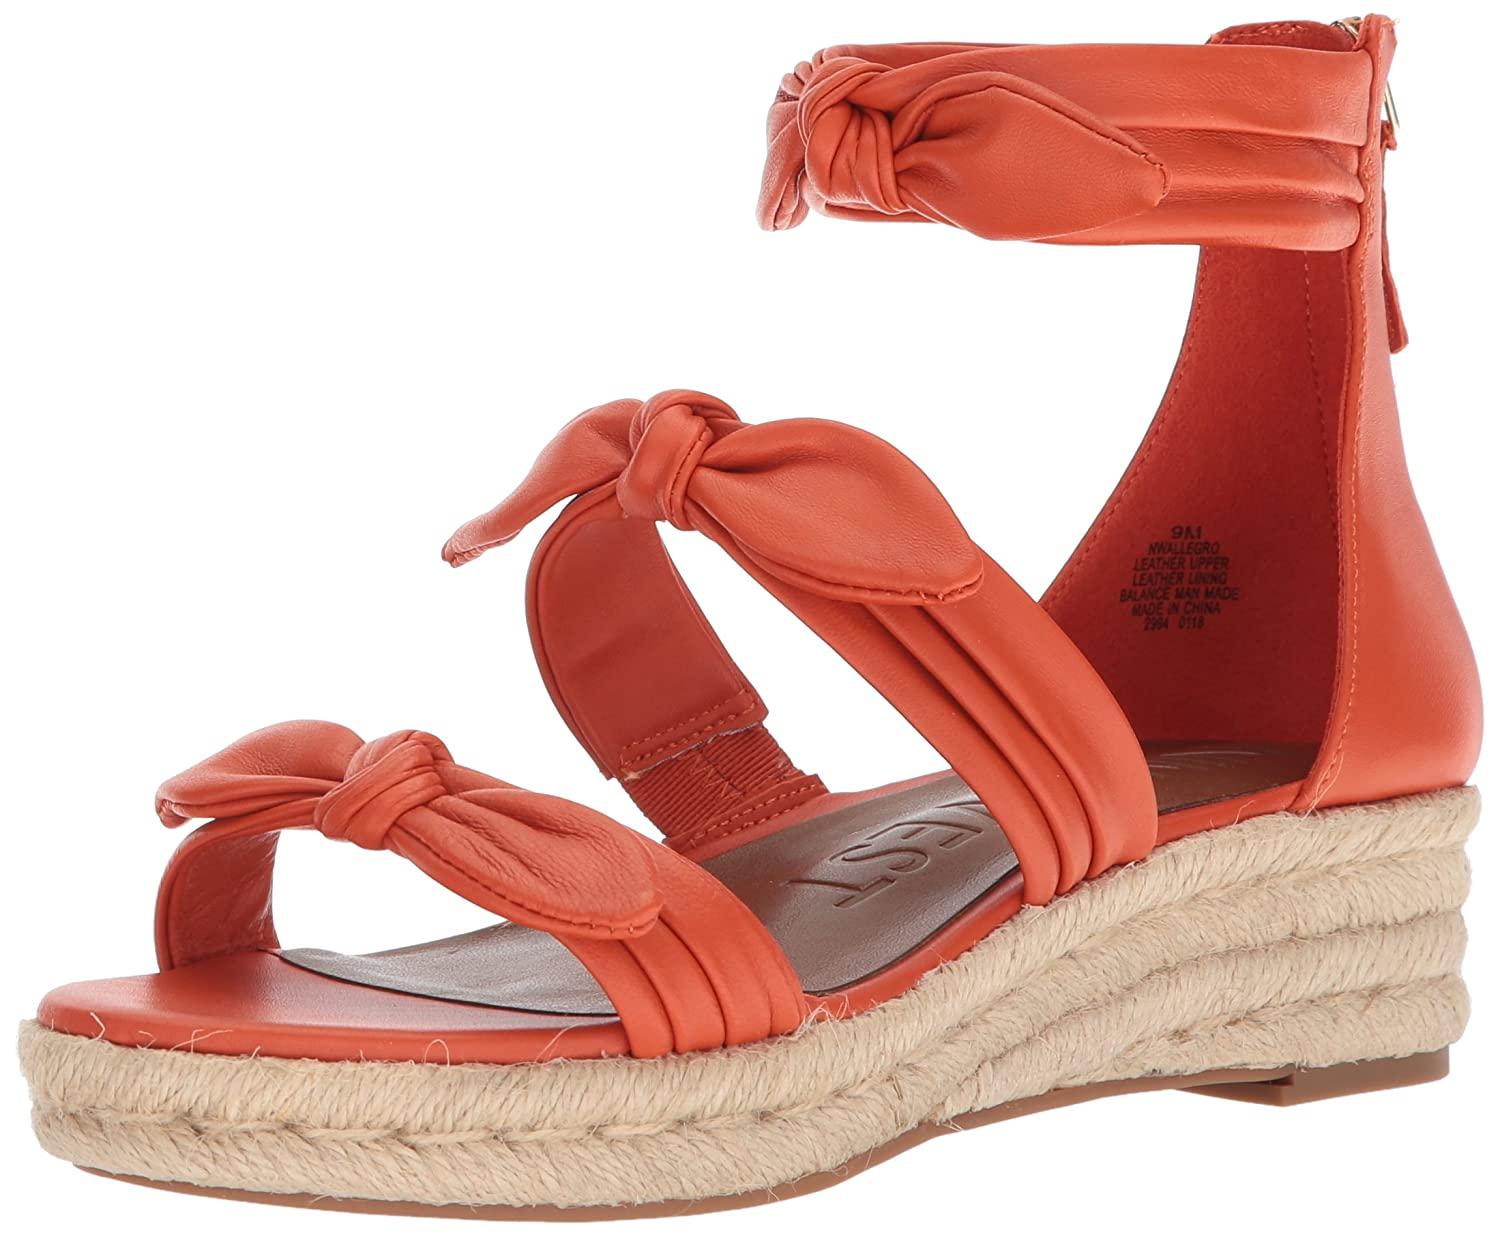 Nine West Women's Allegro Leather Wedge Sandal B074PSRB49 11 B(M) US|Orange Leather